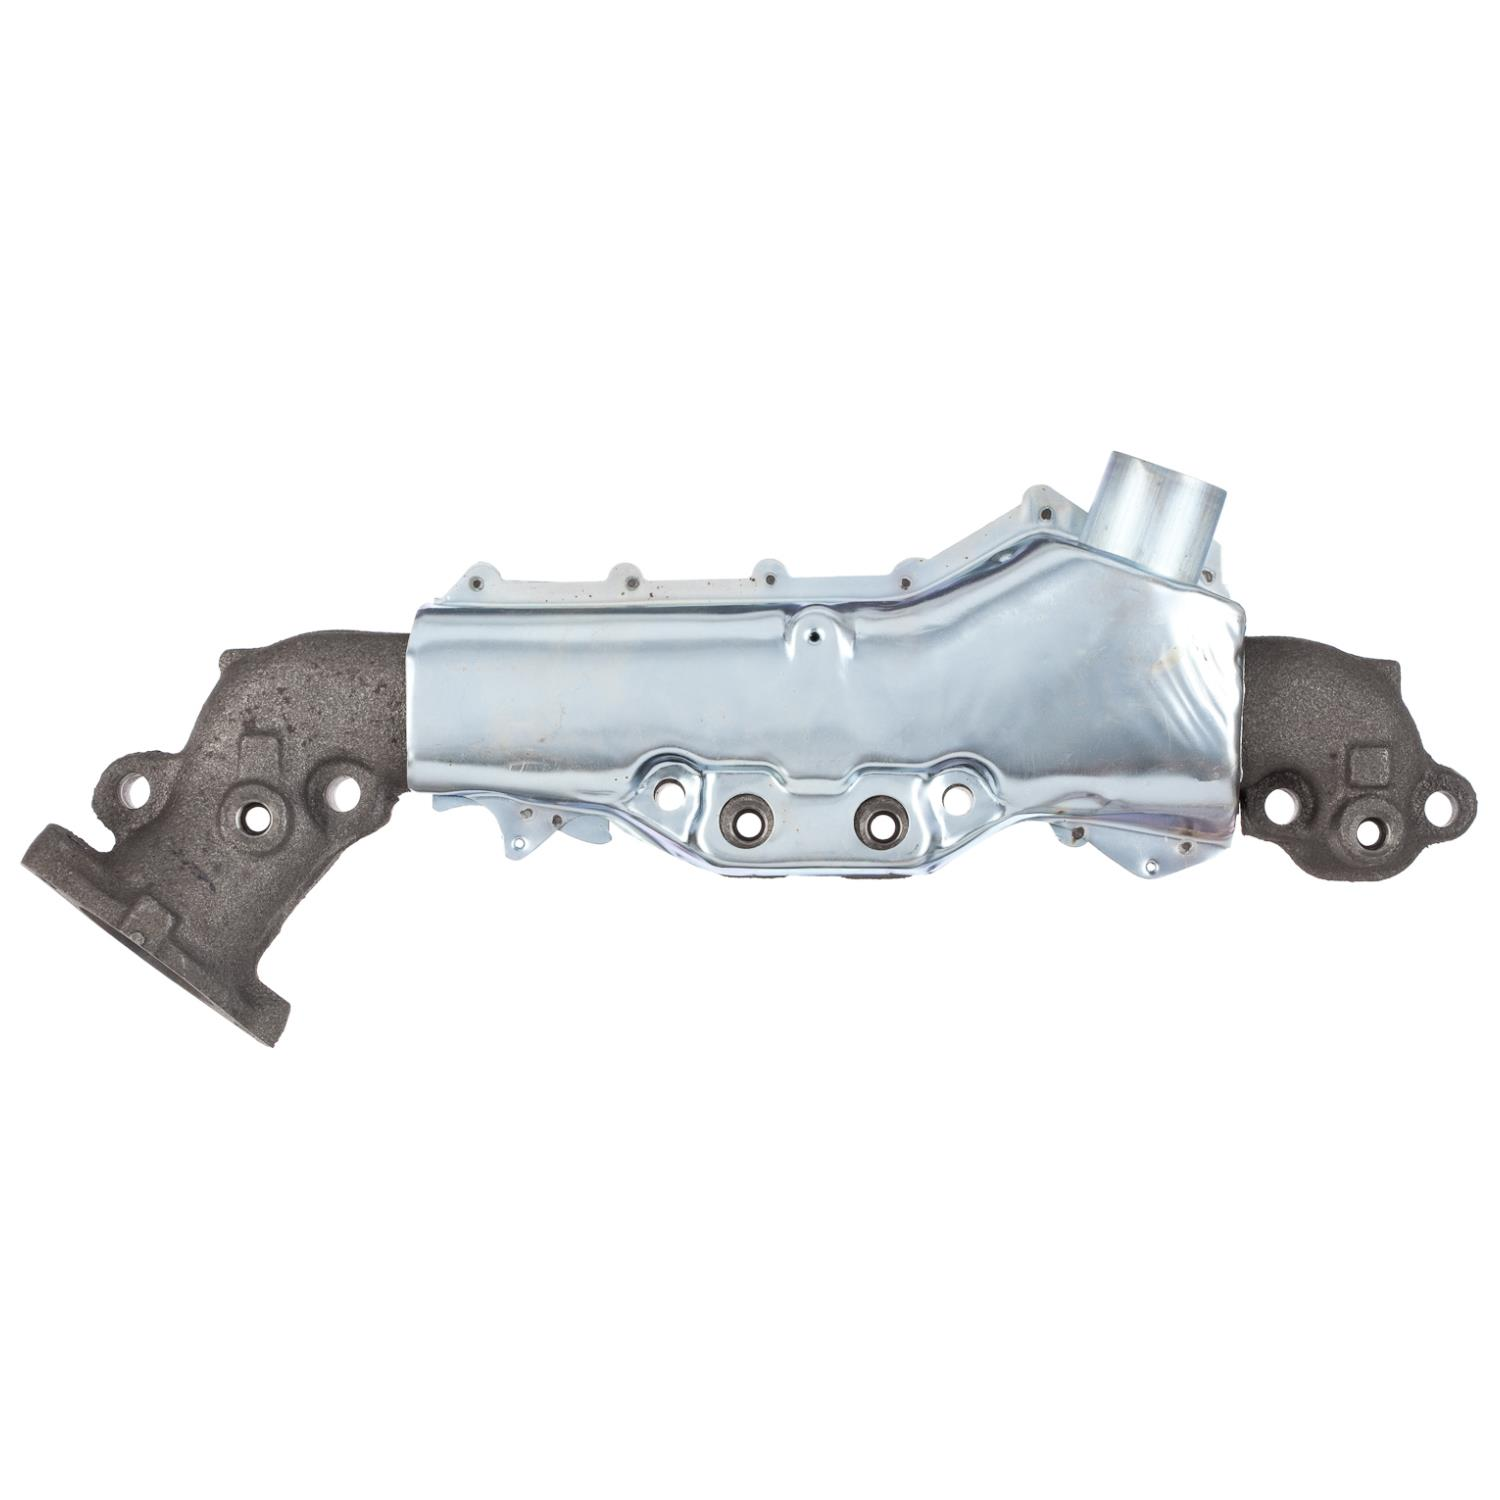 ATP Automotive Graywerks 101156 Exhaust Manifold